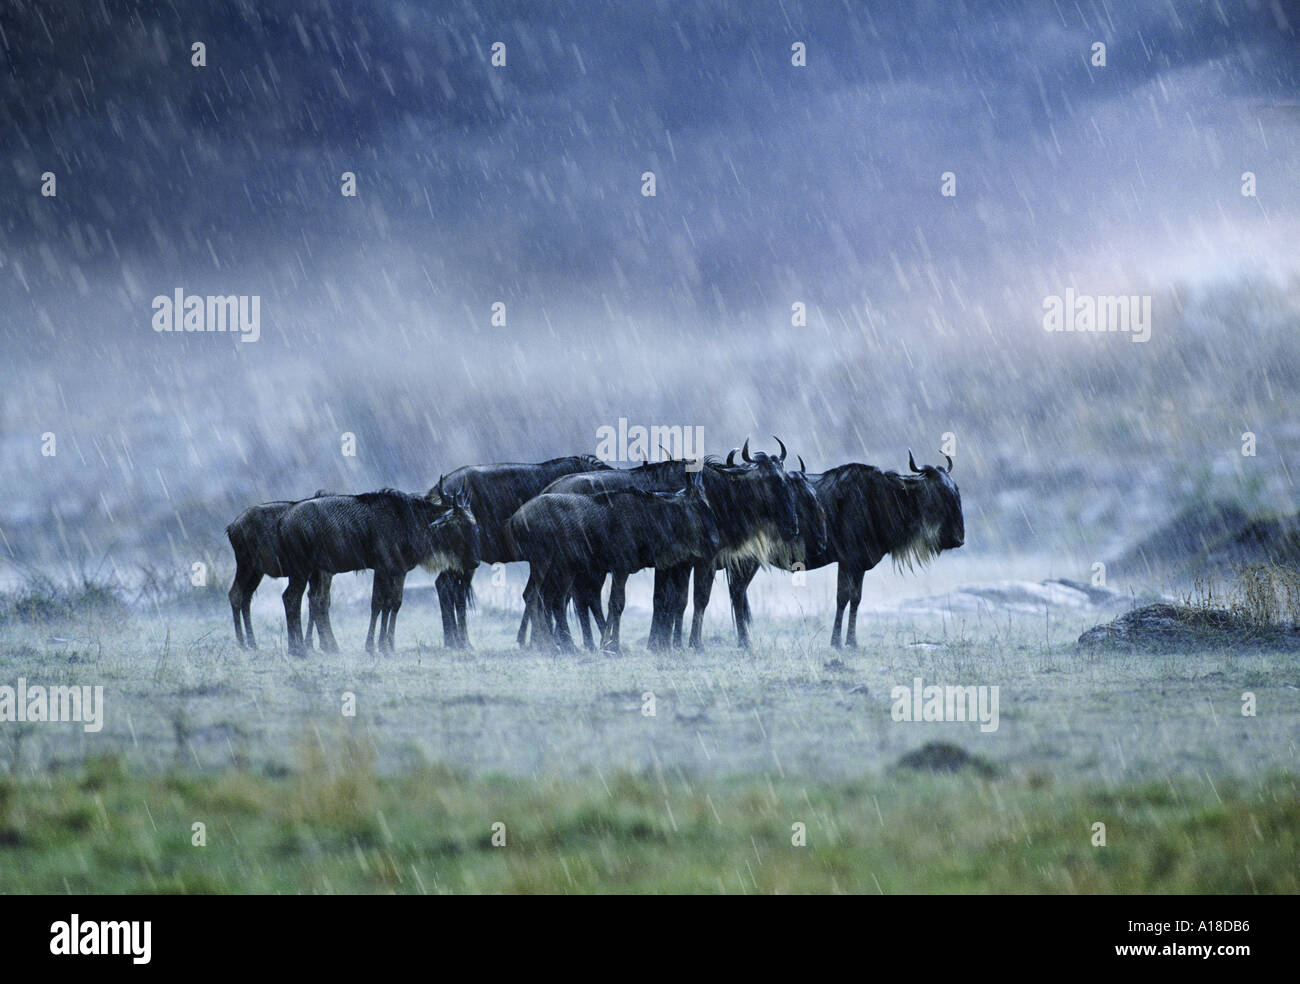 Wildebeest in the rain Masai Mara Kenya - Stock Image